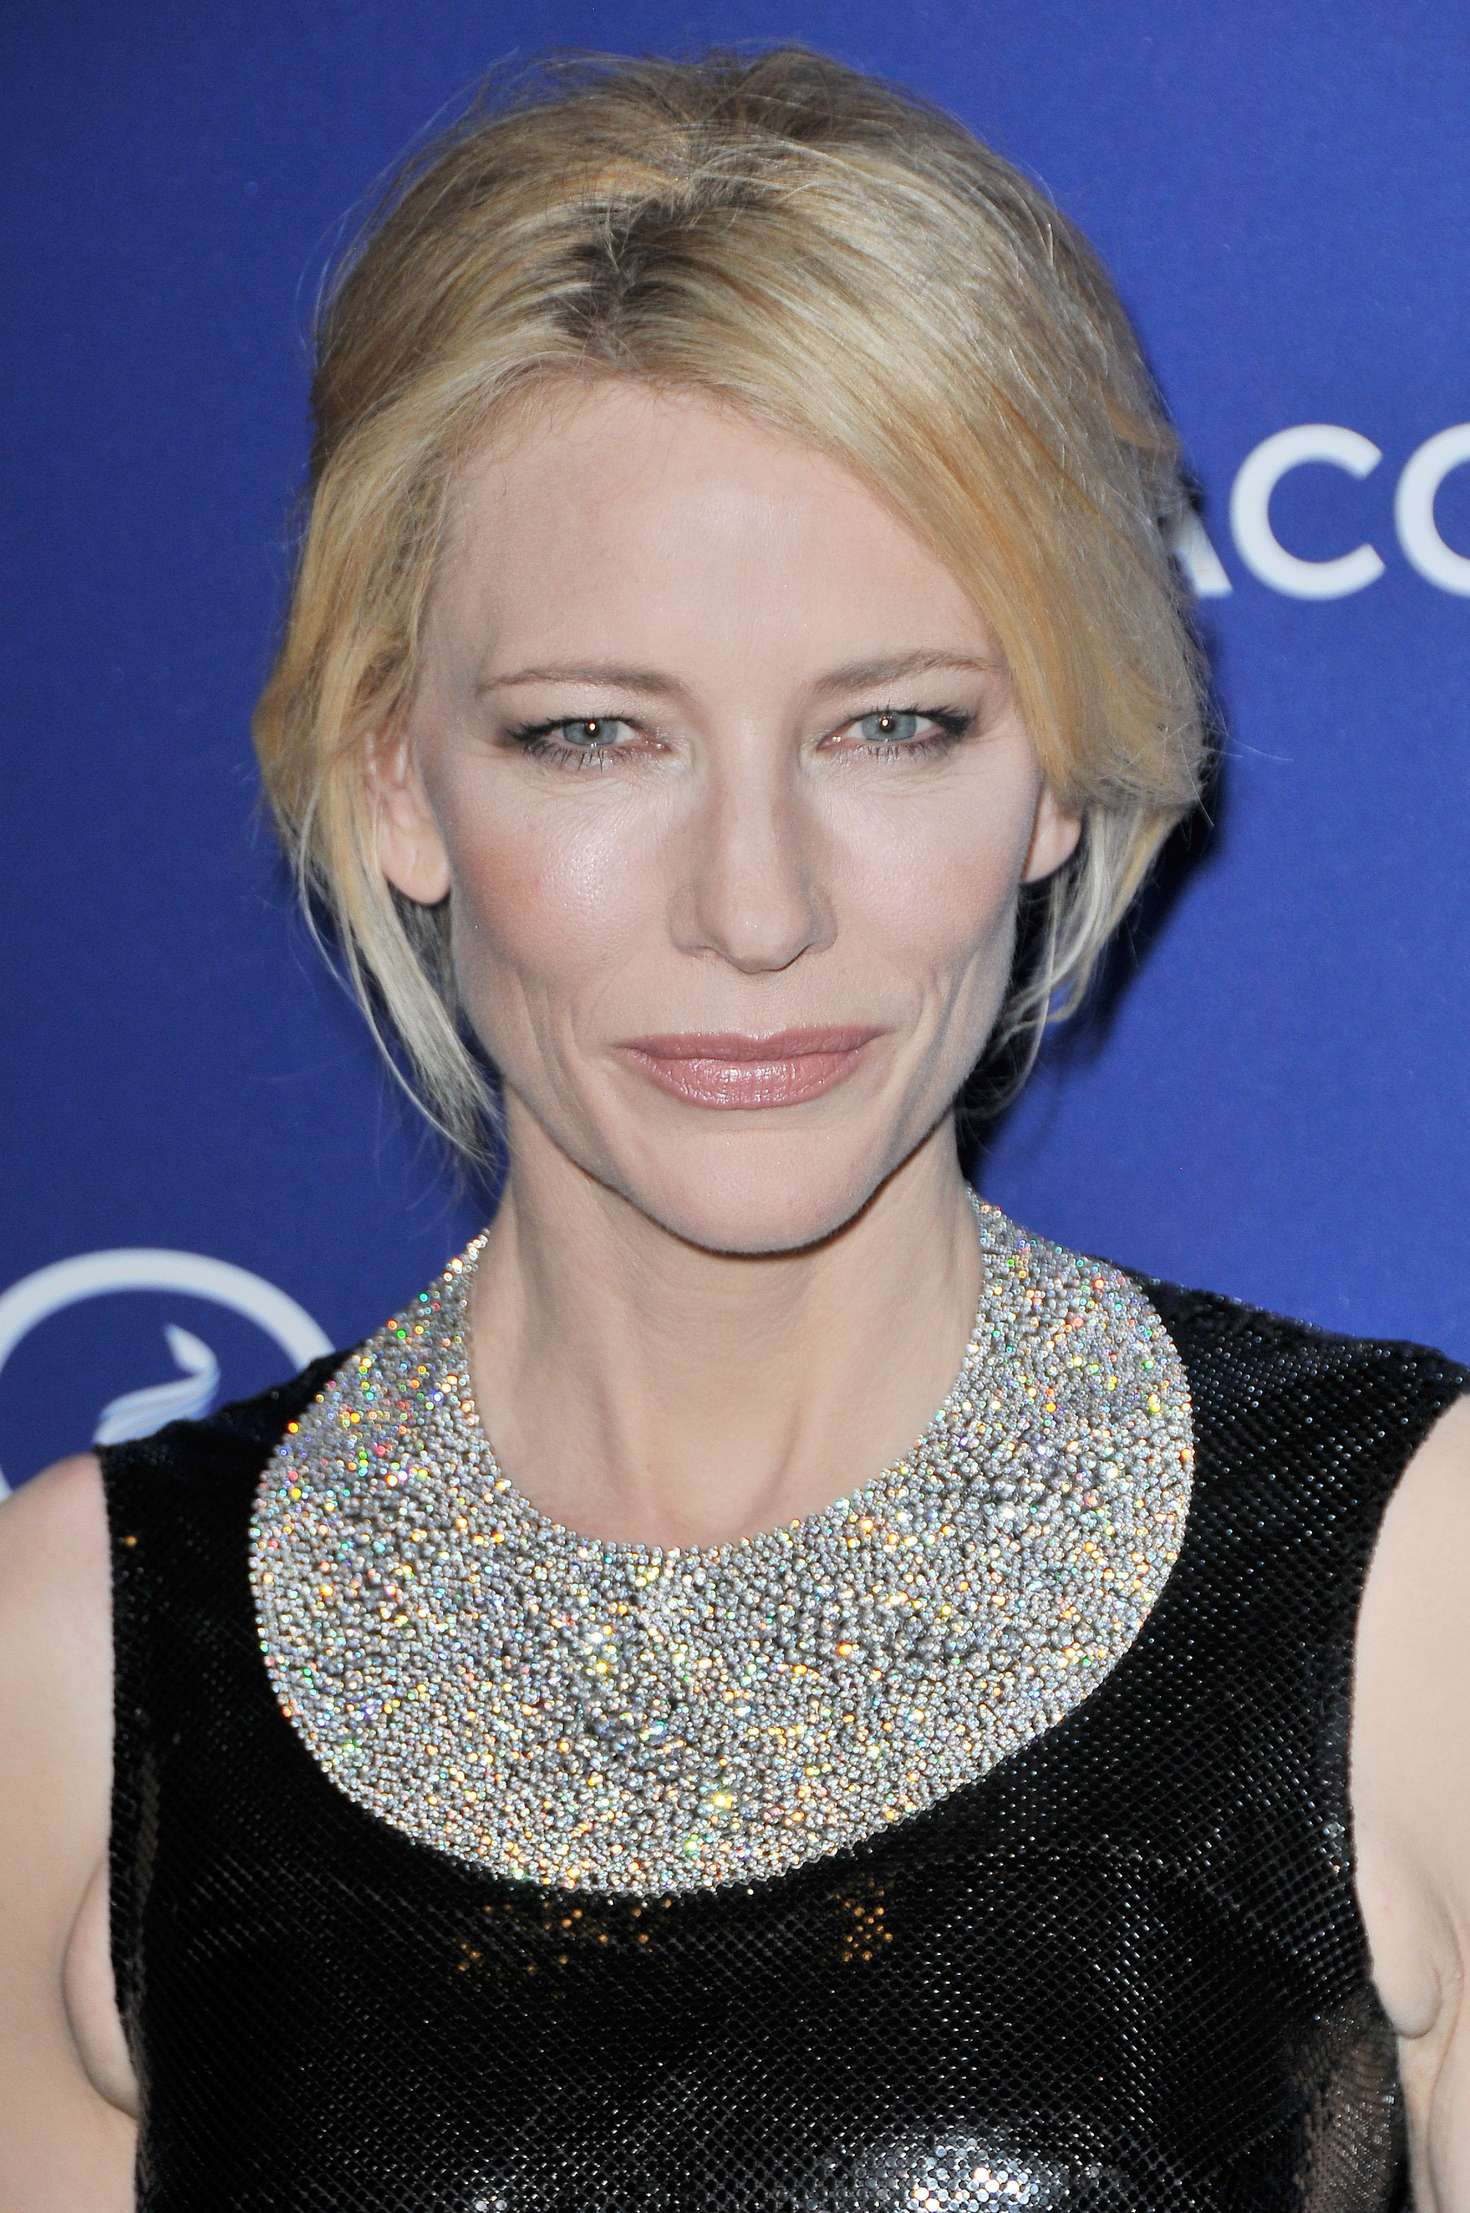 cate blanchett - photo #50